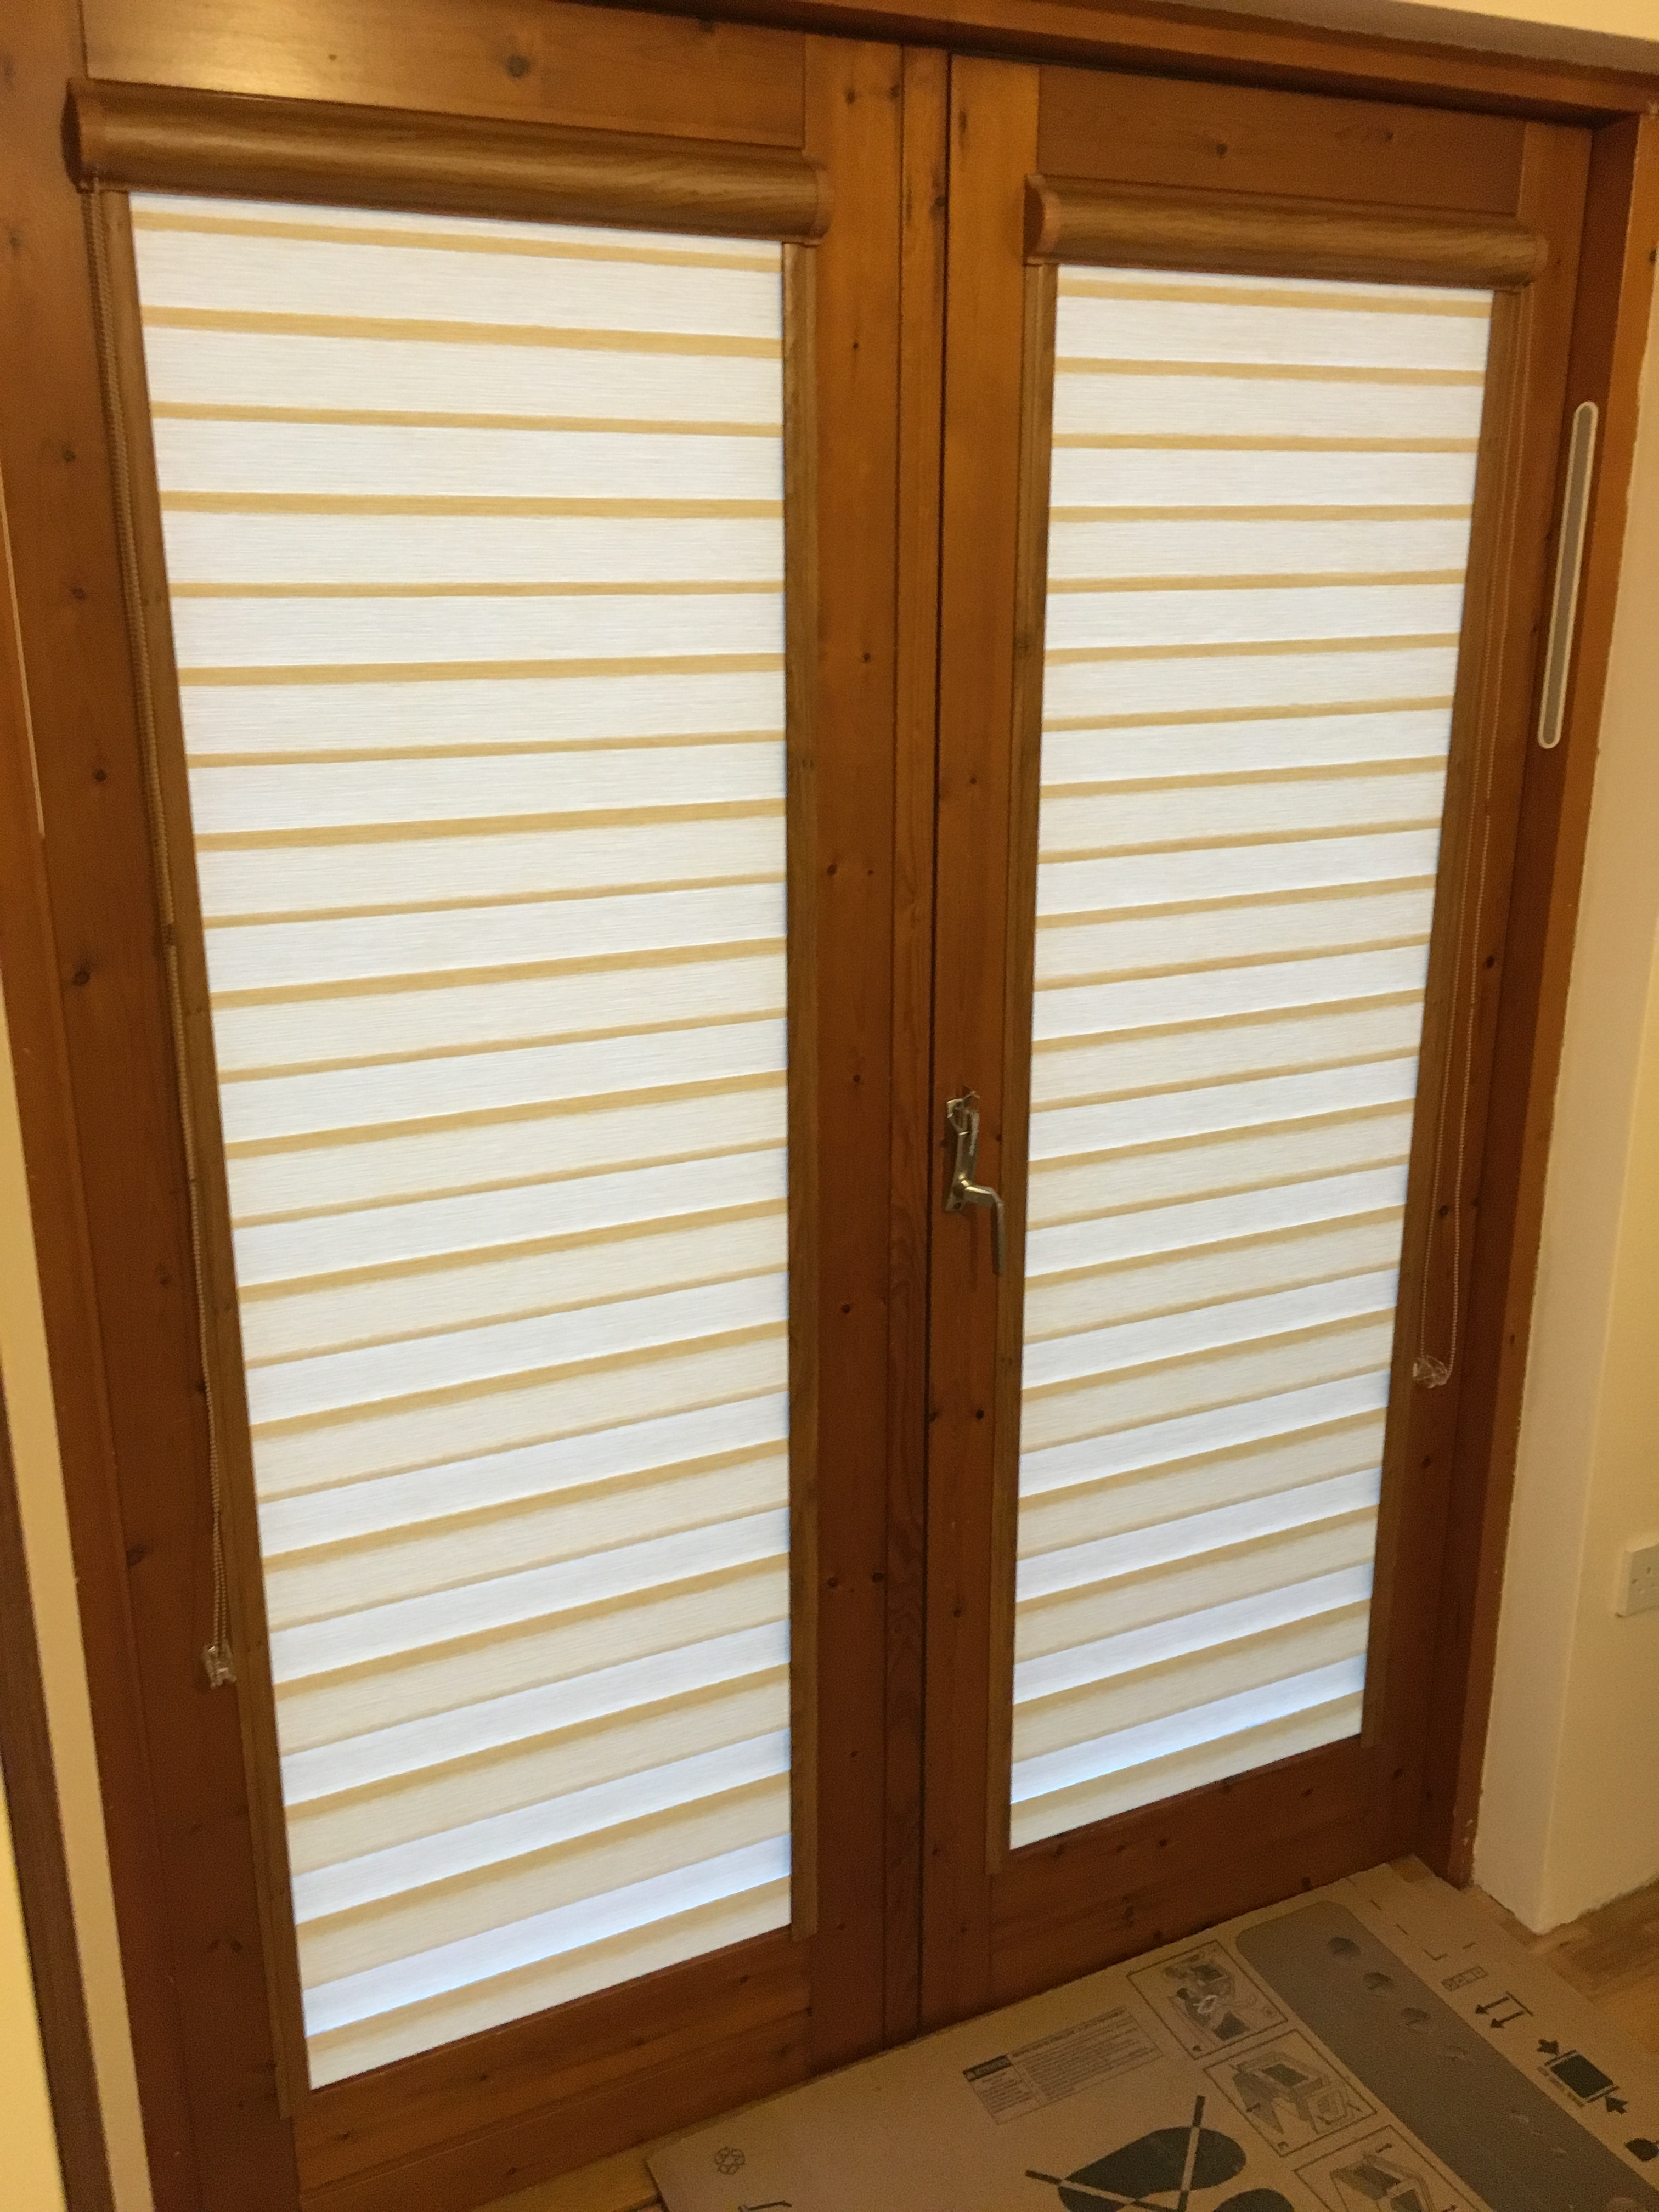 ideas cellular covering window in filtering shades blinds cord economy hunting and com light coverings repair blind covers